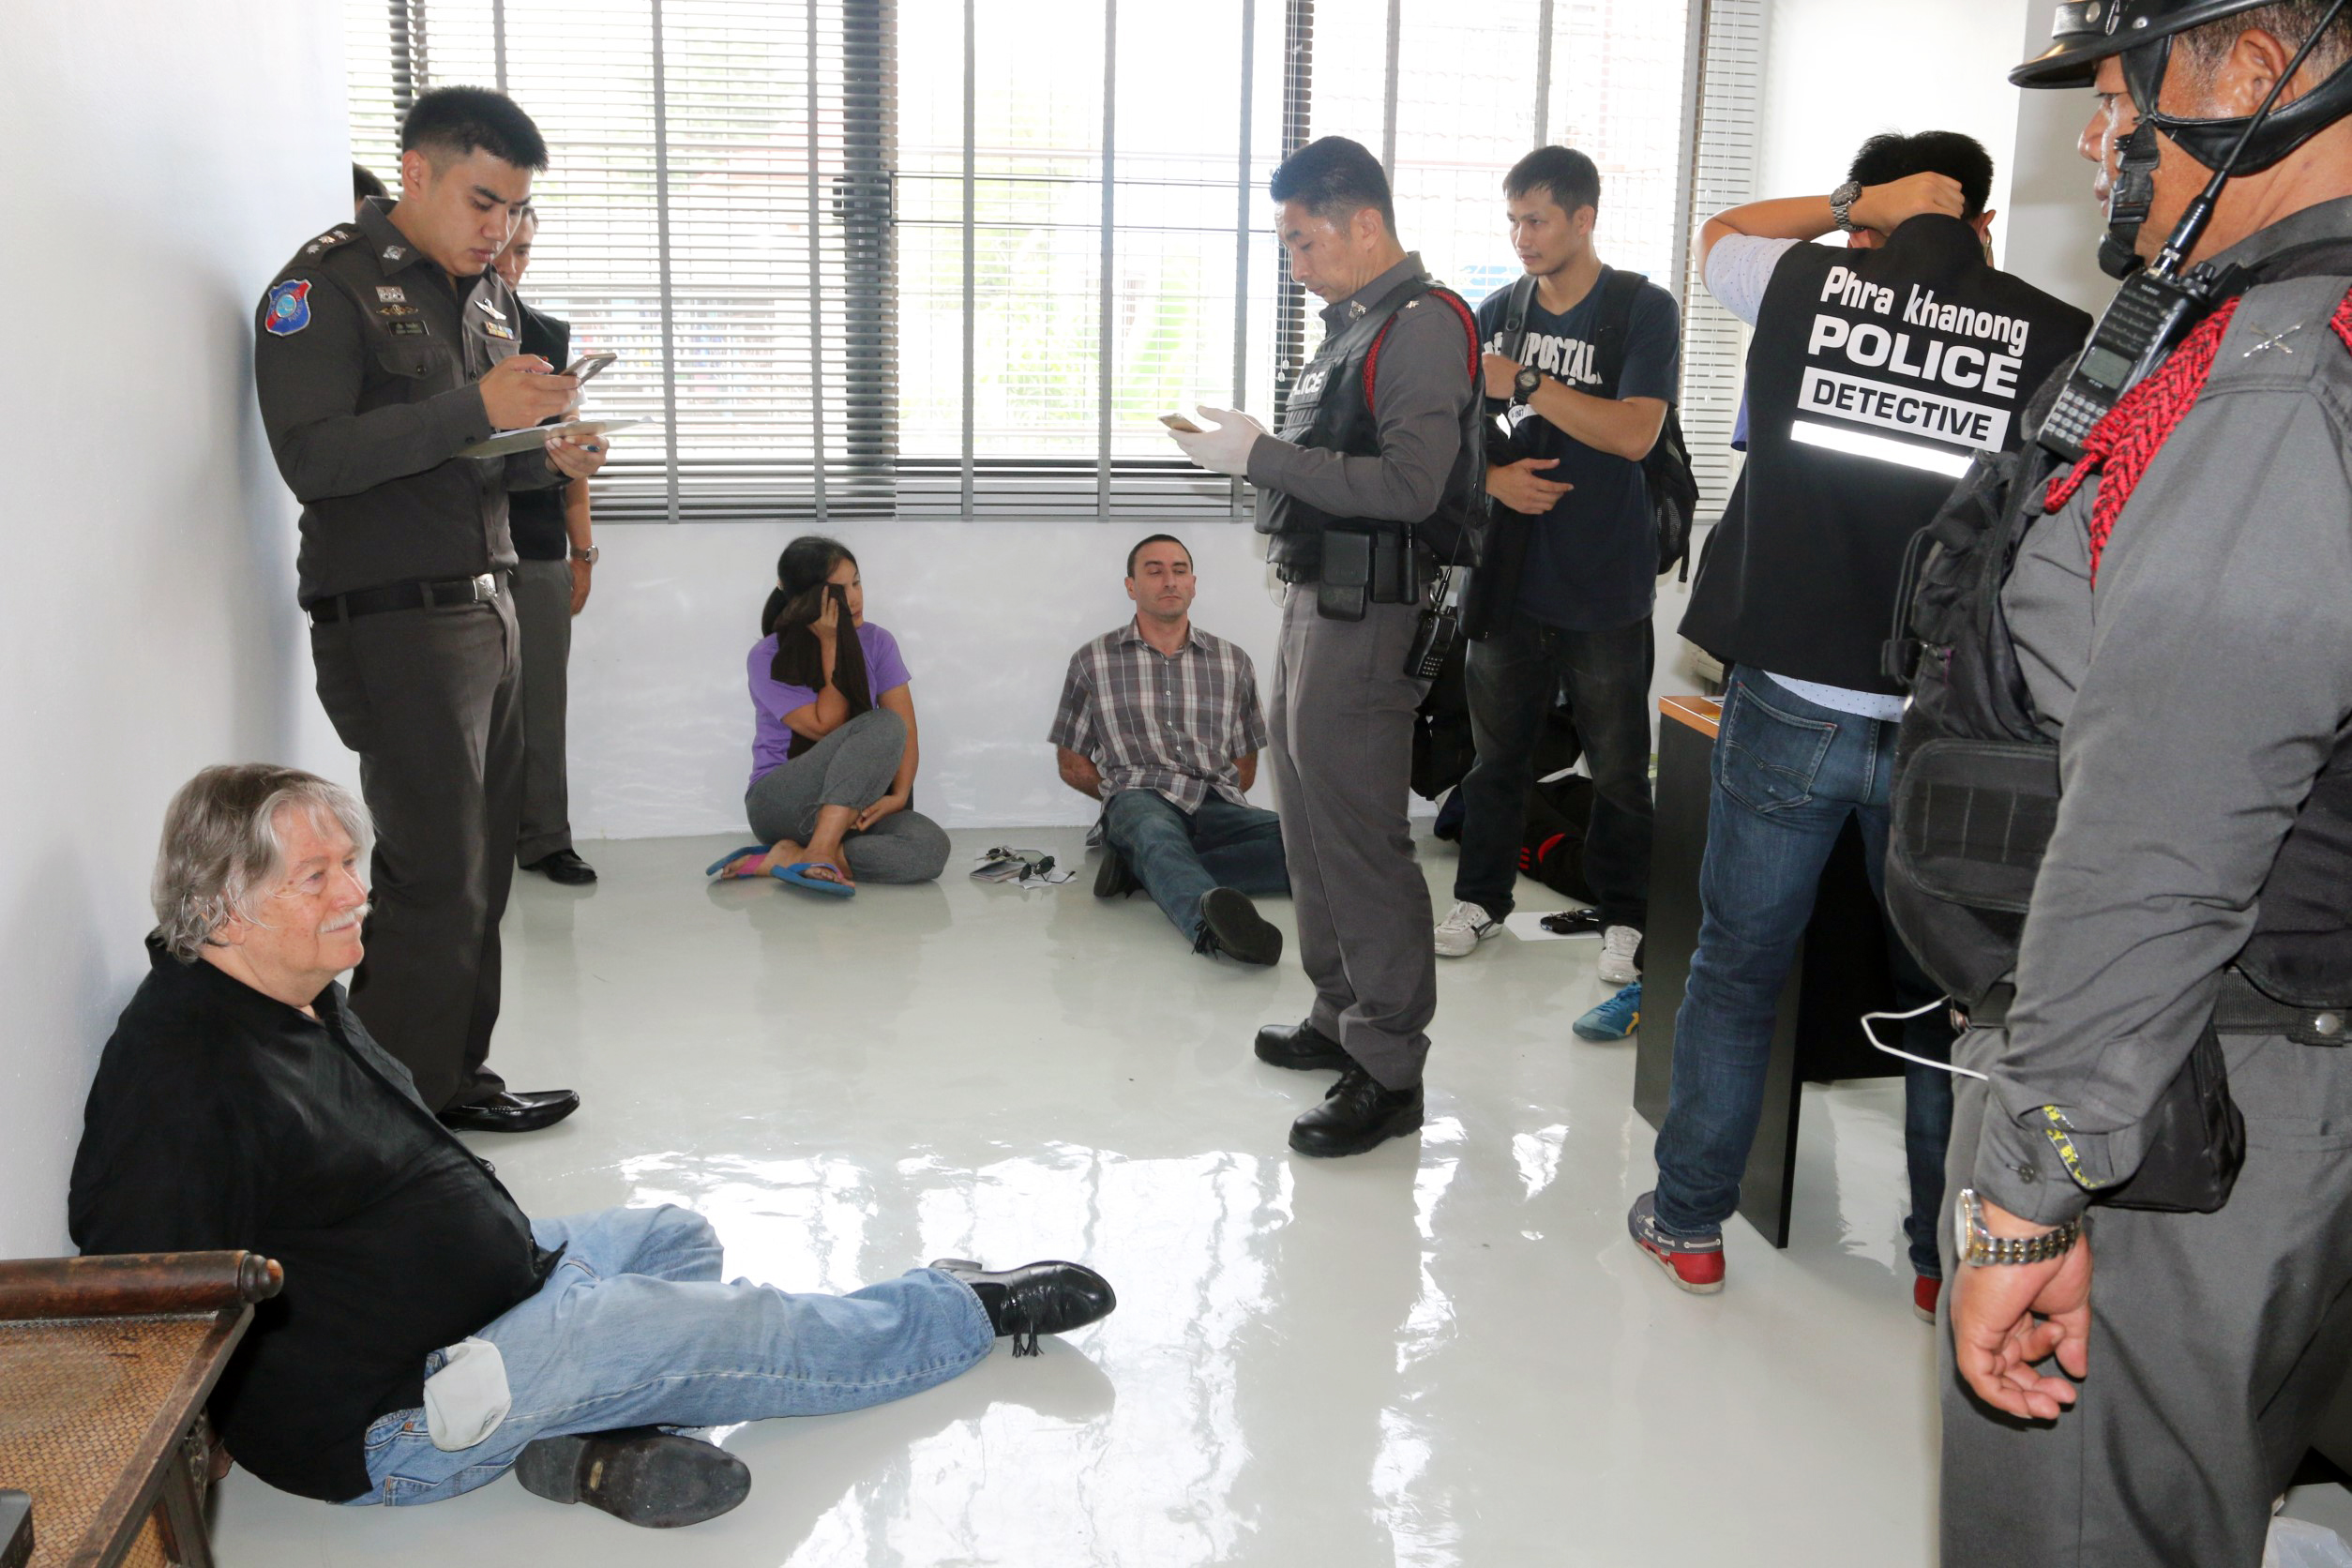 Thai police officers interrogate three foreigners arrested in an alleged passport-forgery operation in Bangkok on Sept. 23, 2016